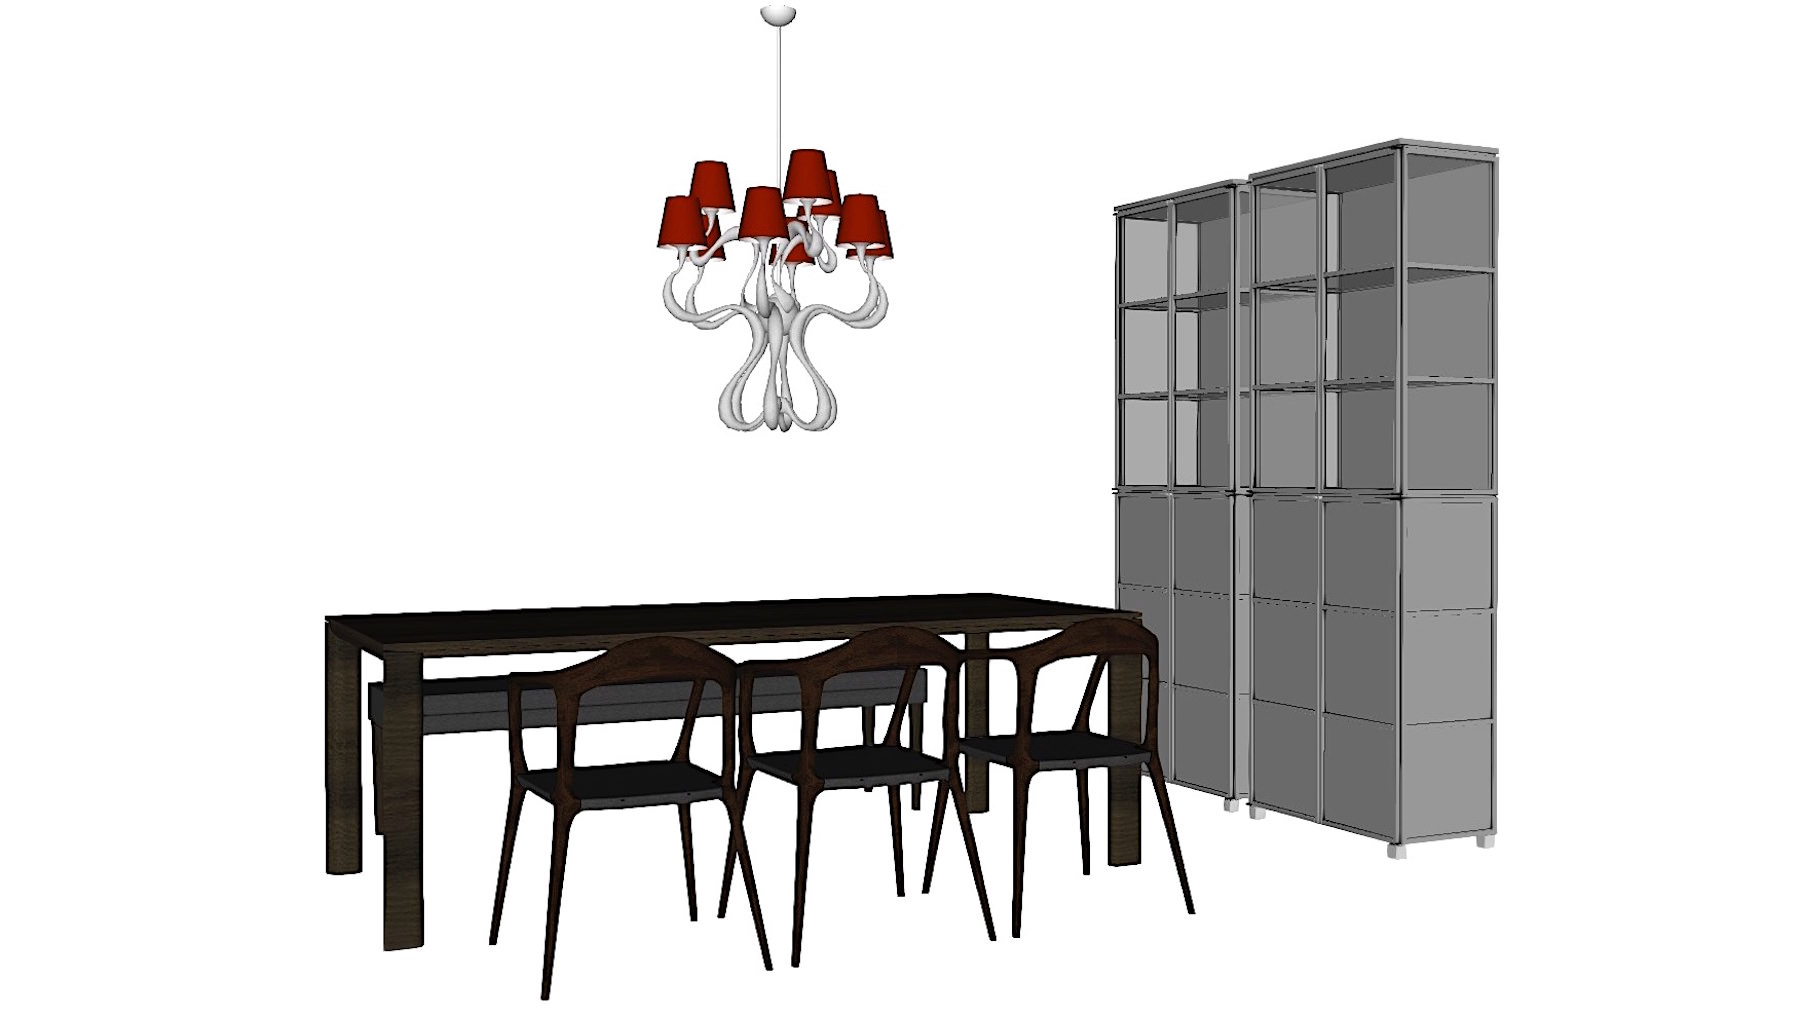 Sketchup for interior design resources for Interior design resources